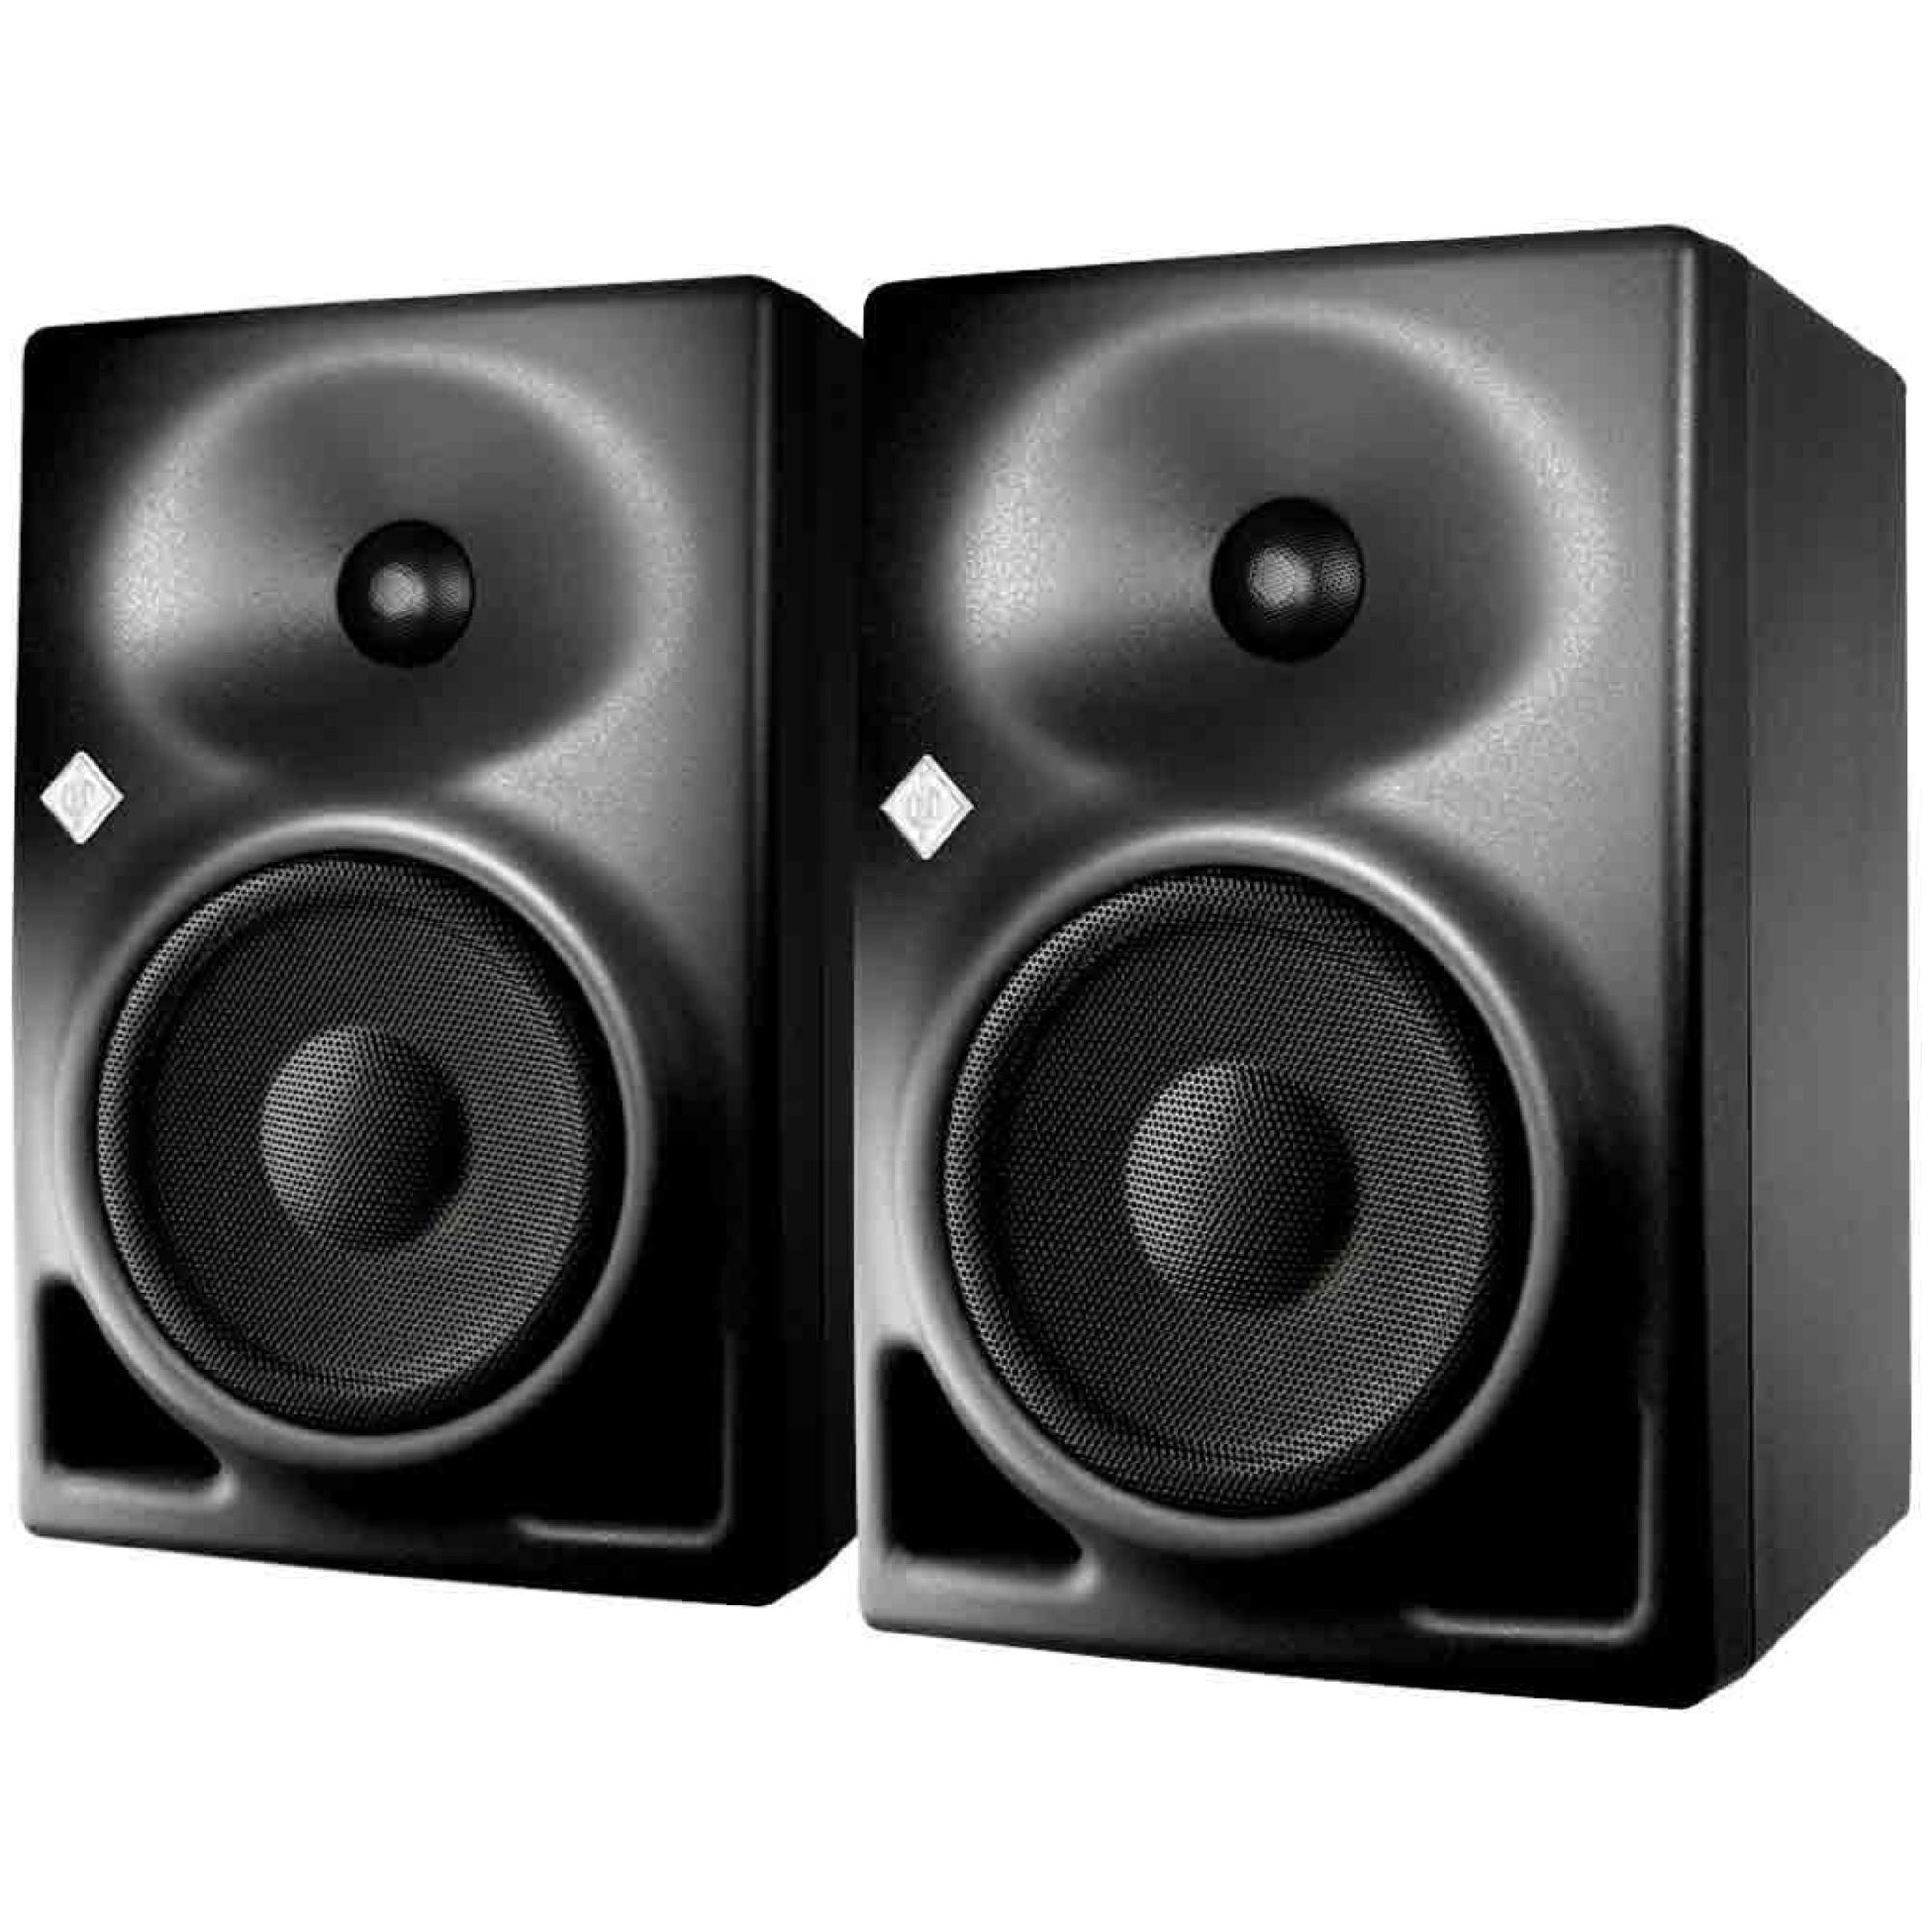 Neumann KH 120A Active Studio Monitor, Black, Pair